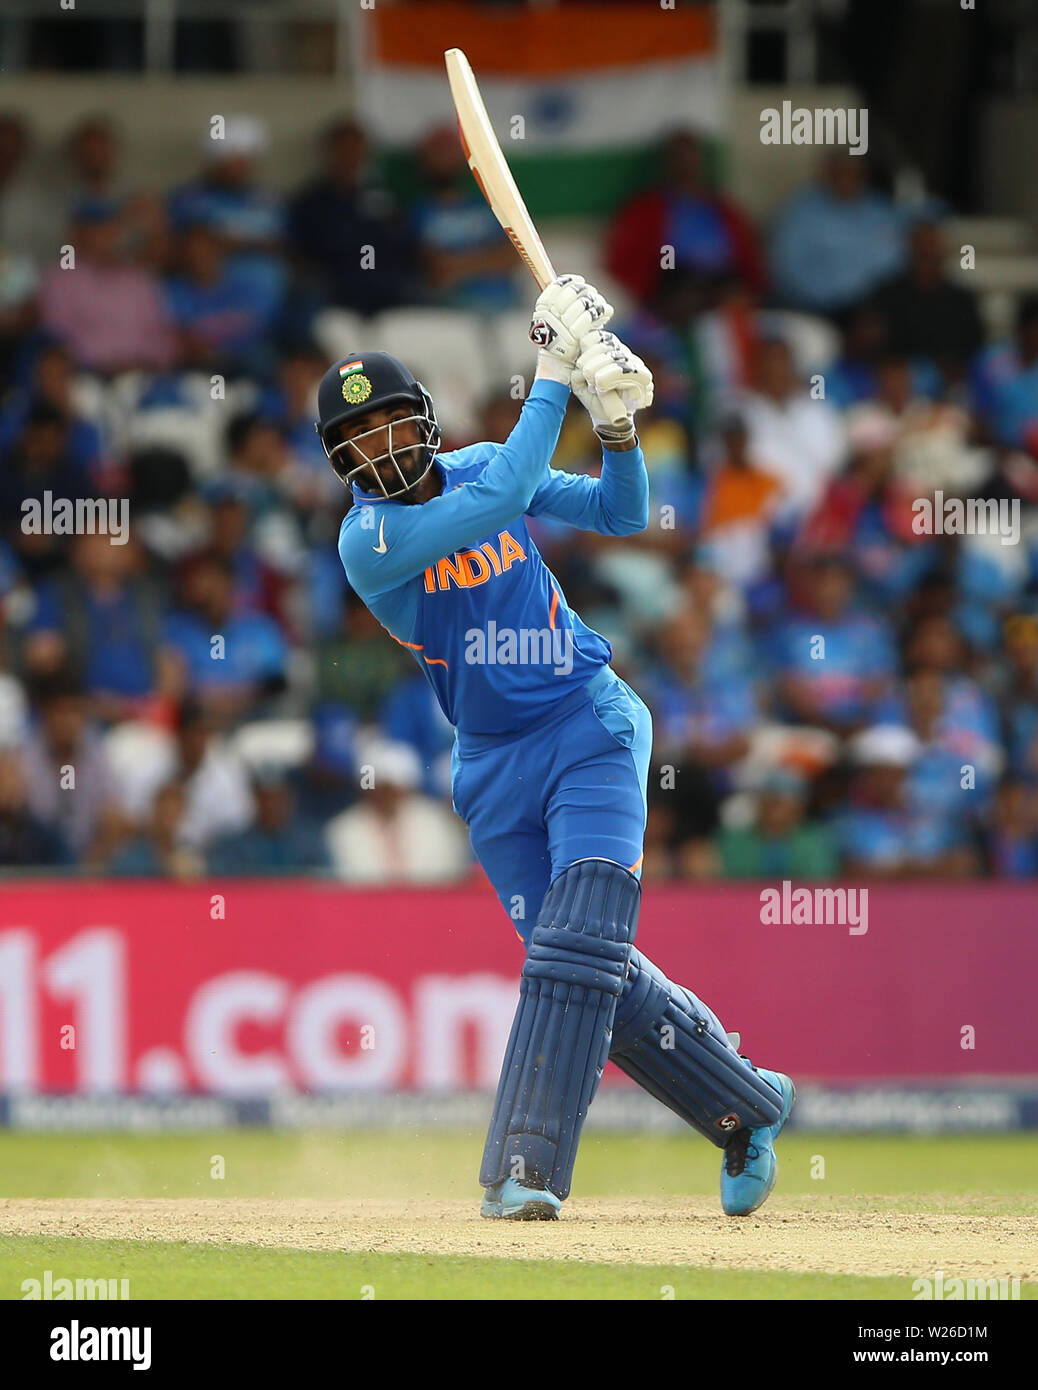 India's KL Rahul hits a 6 during the ICC Cricket World Cup group stage match at Headingley, Leeds. - Stock Image